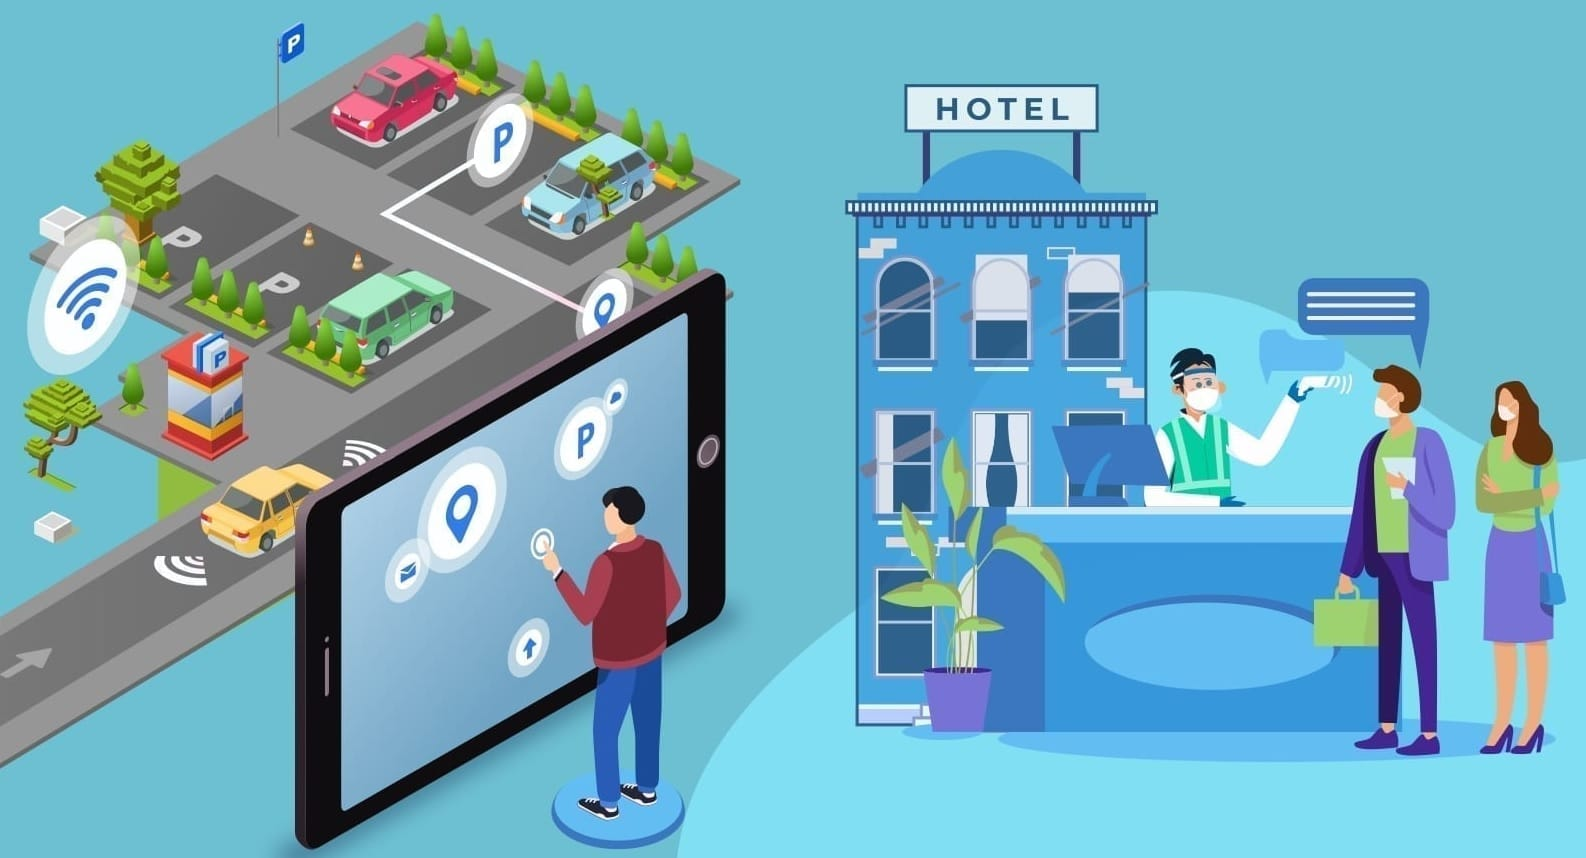 How the Use of Technology is Relevant in Today's Hospitality Industry